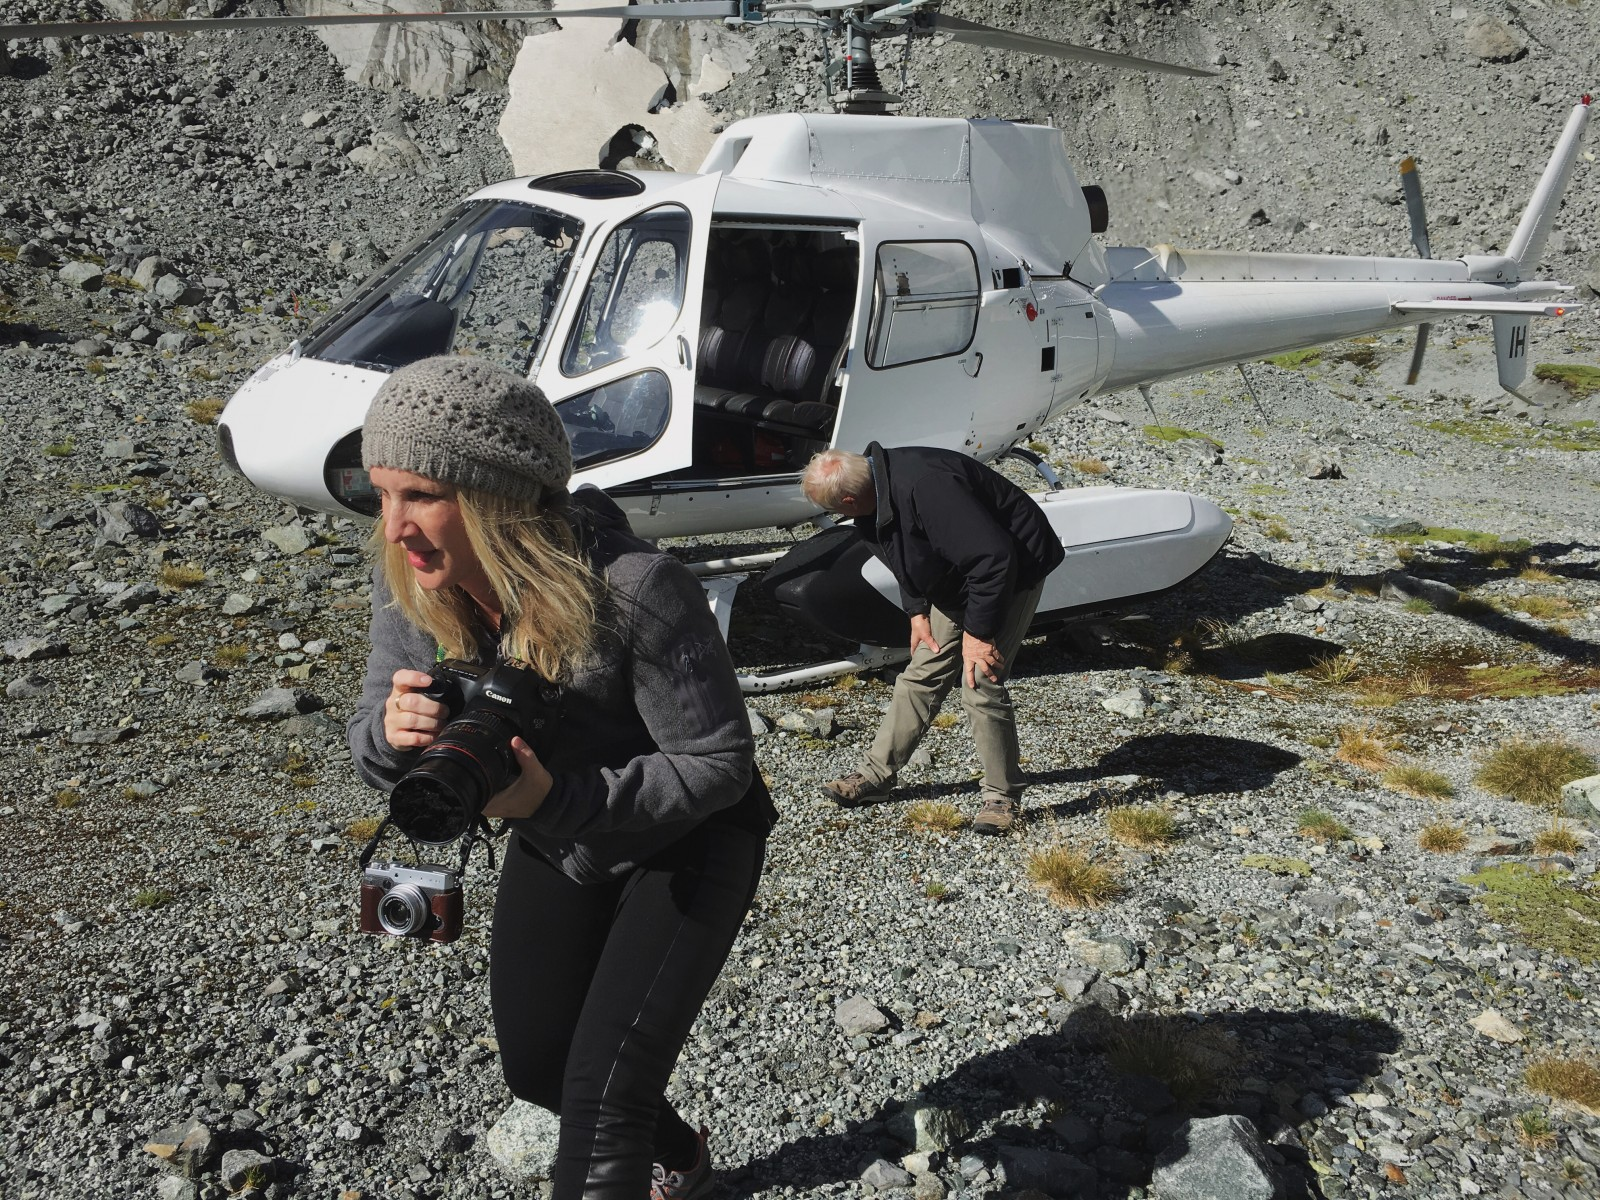 Here I am exiting the helicopter to explore the Fiordland